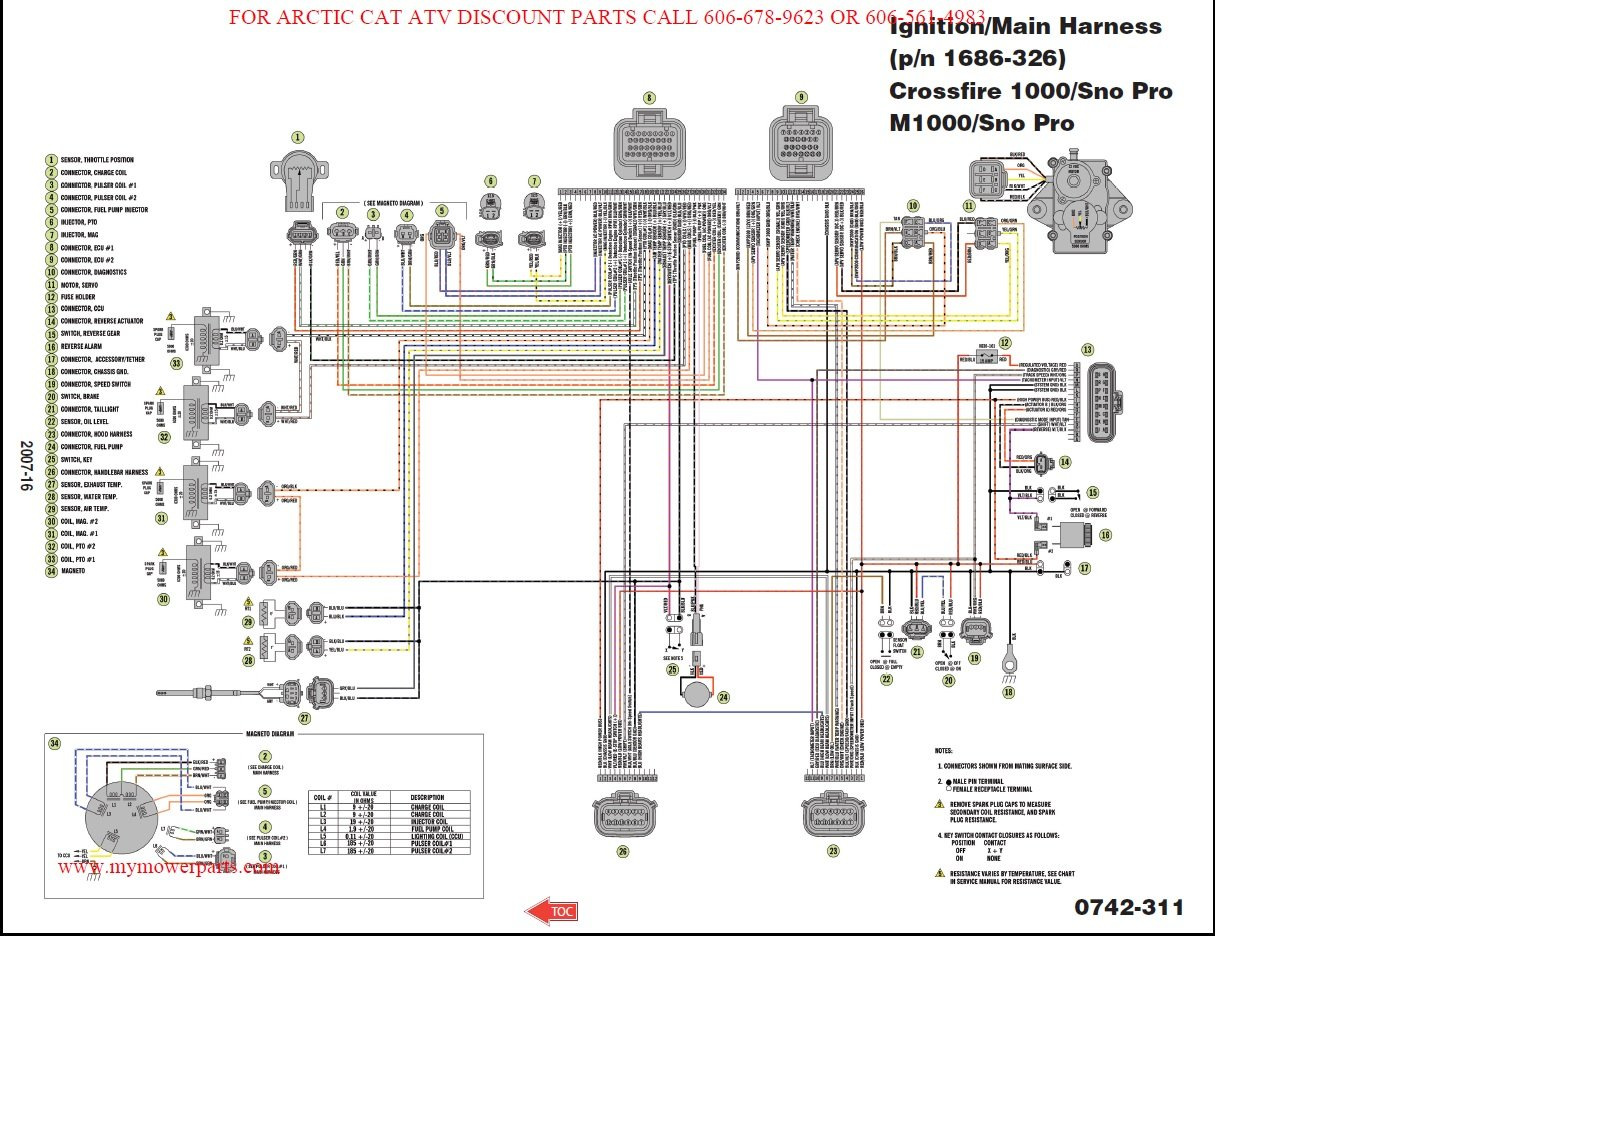 hight resolution of 2007 bmw 650 fuse diagram wiring library2007 sno pro wiring diagram arcticchat com arctic cat 2014